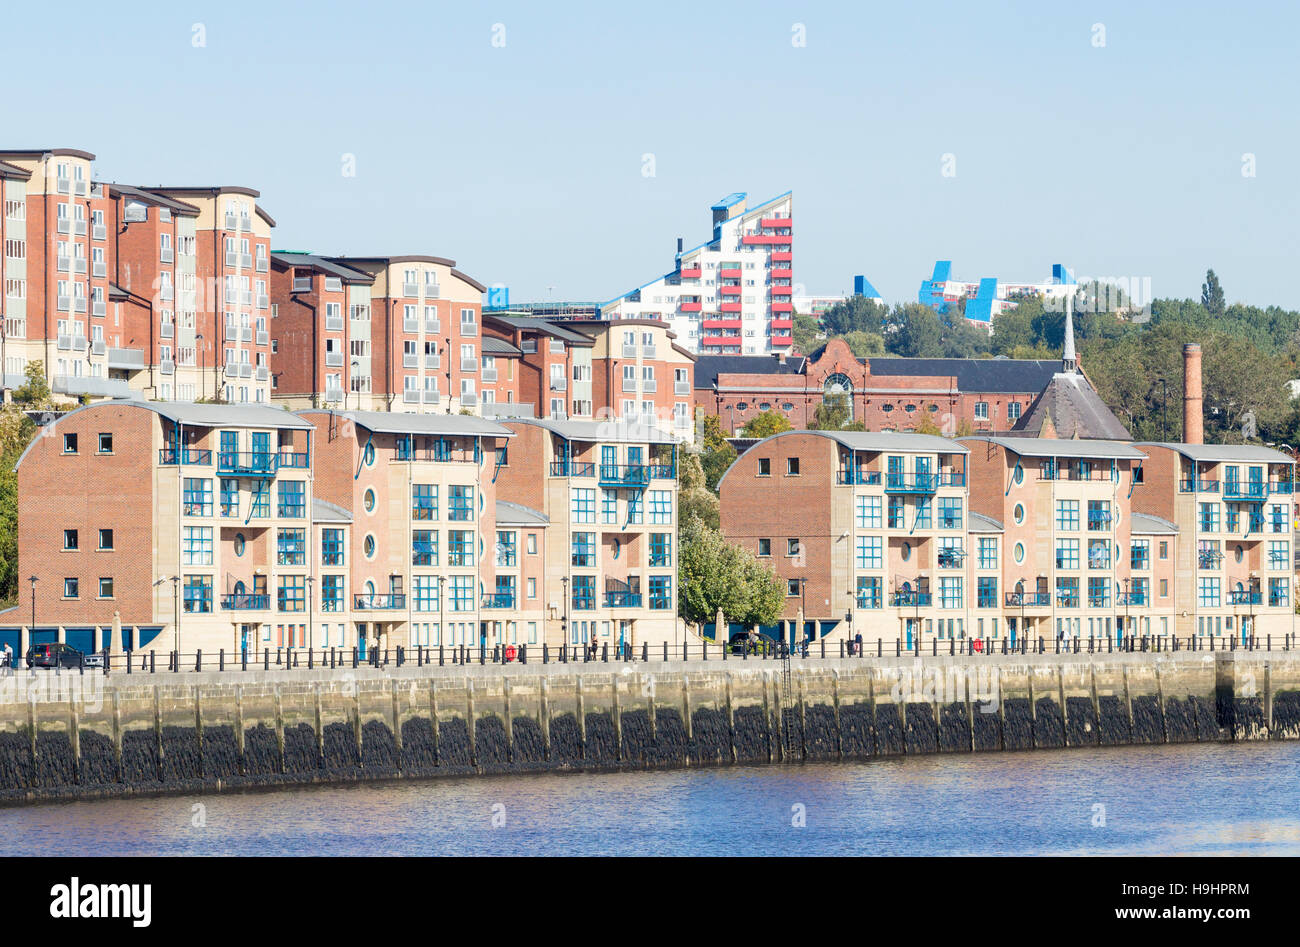 Waterside Apartments Overlooking River Tyne On The Quauyside